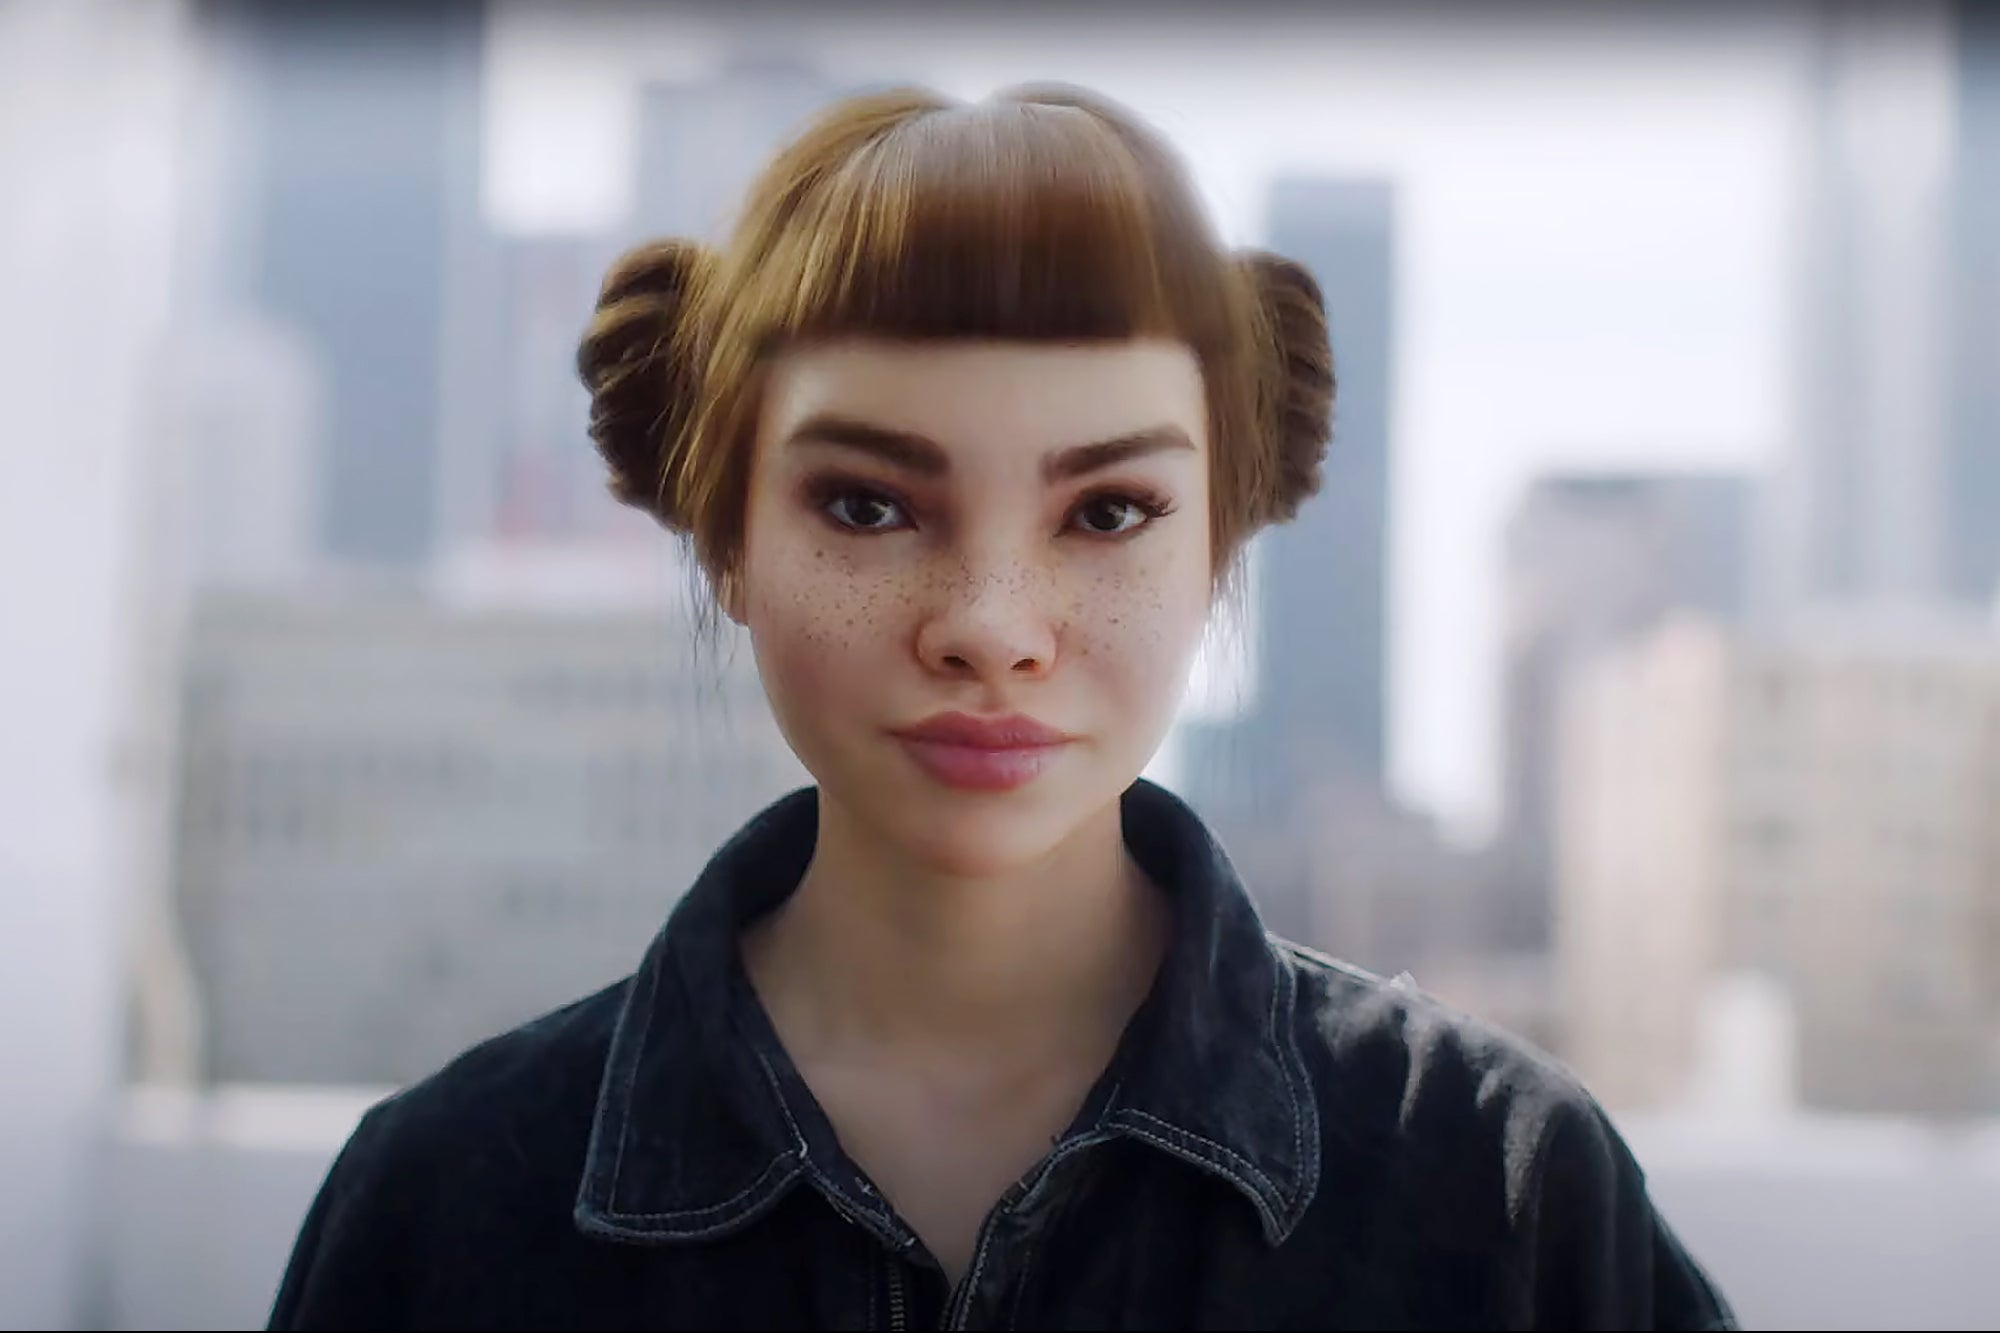 CGI-Created Virtual Influencers Are the New Trend in Social Media Marketing